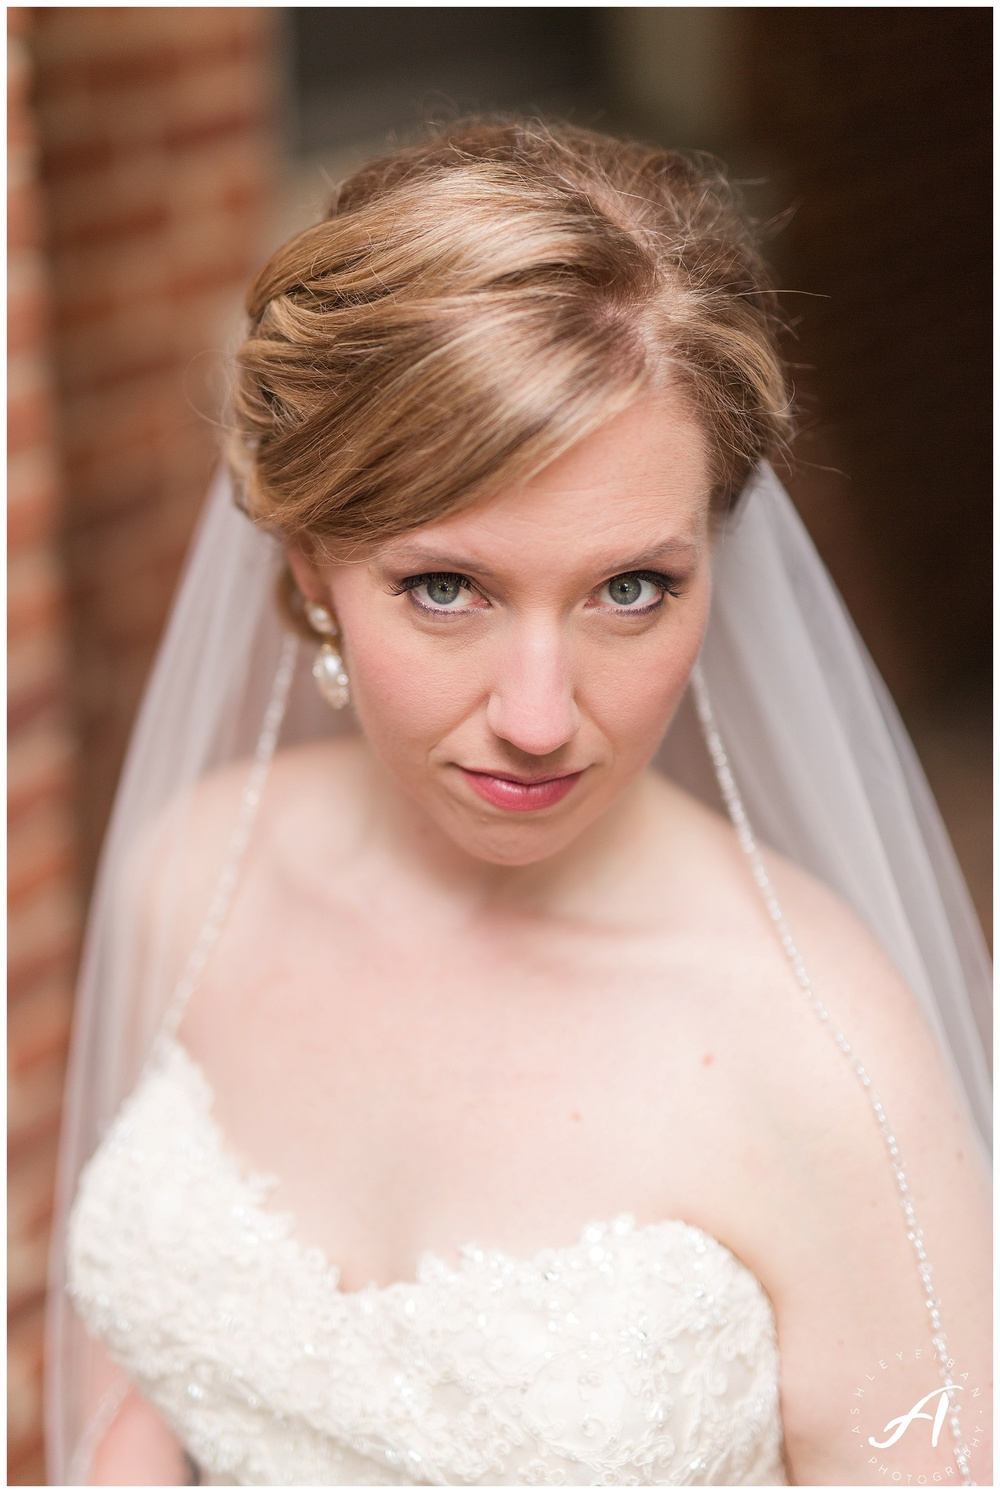 sarah stallings bridal portraits || lynchburg, va wedding